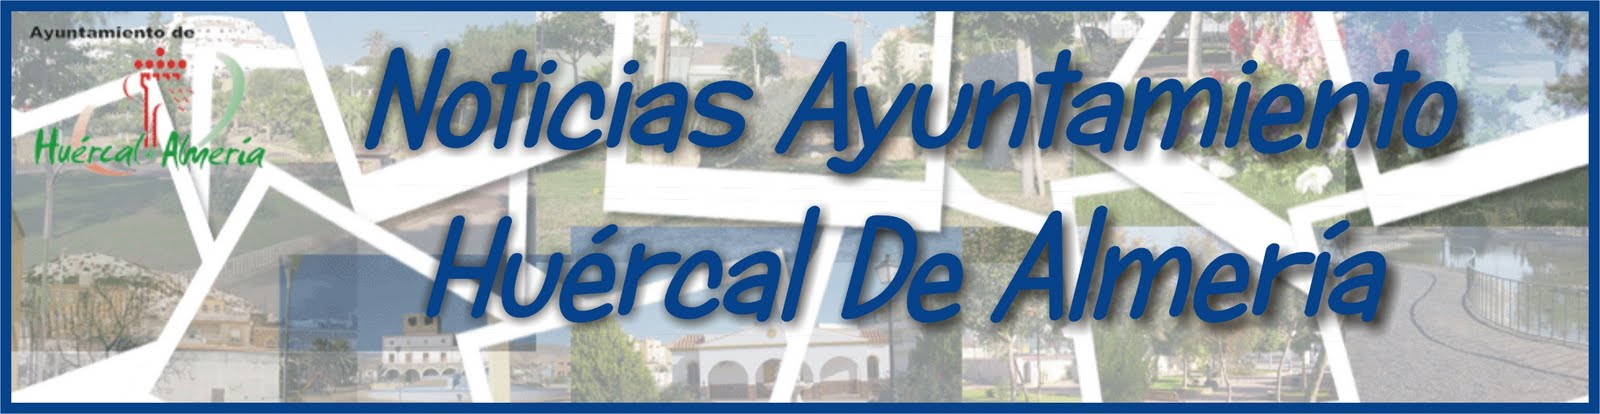 Blog de noticias ayuntamiento Hurcal de Almera